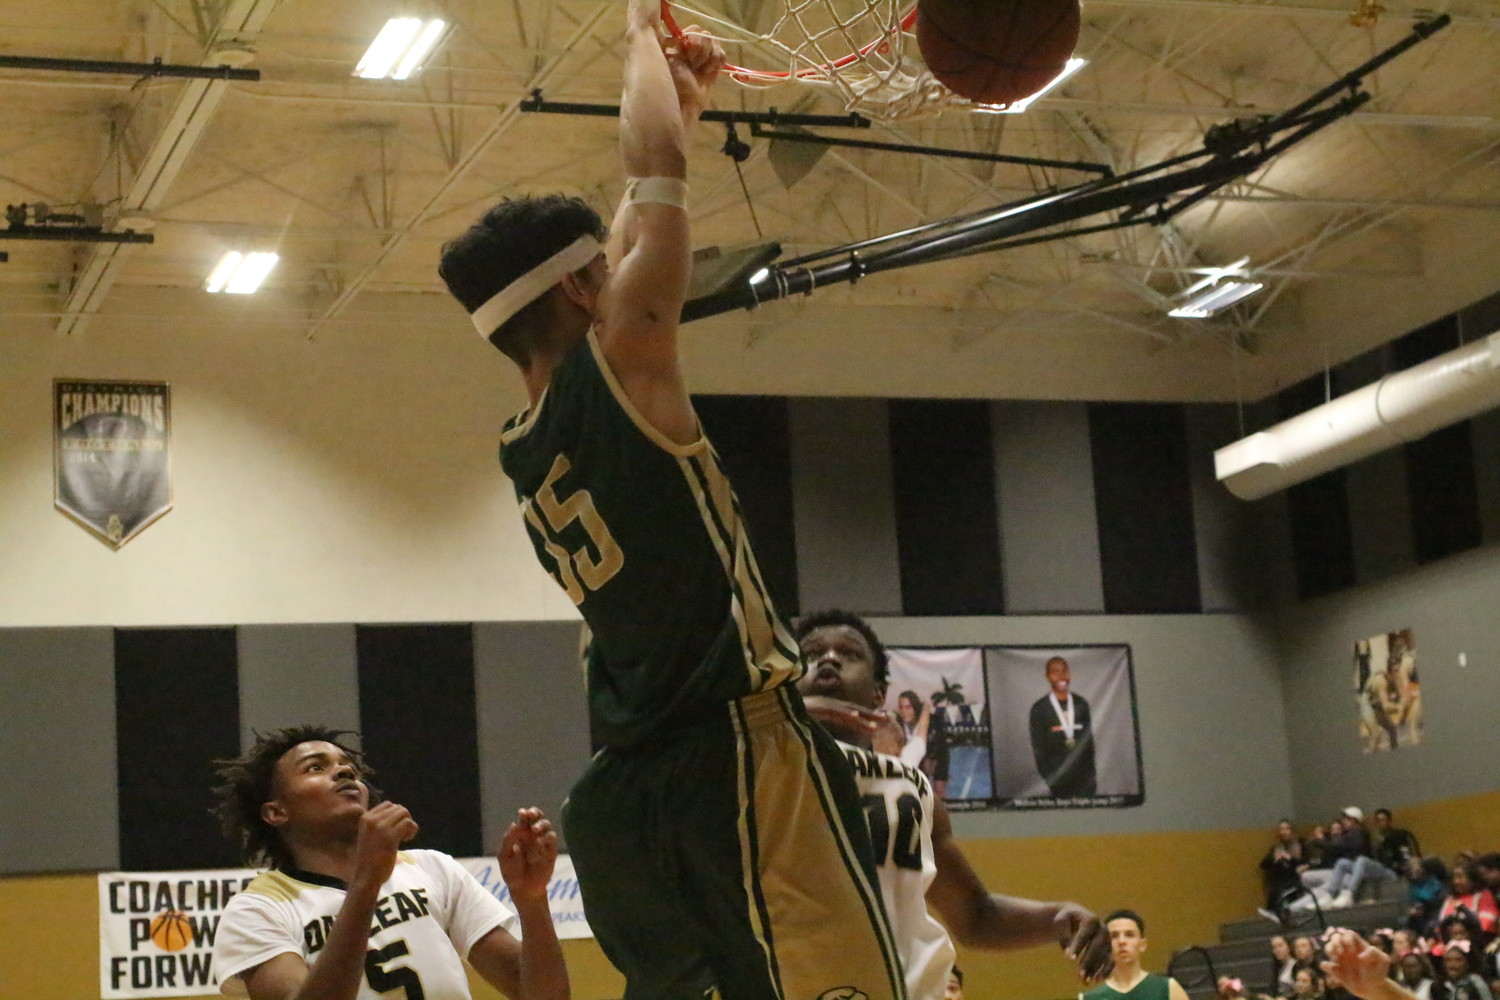 Fleming Island forward Gianfranco Grafals puts down dunk against Oakleaf in Golden Eagles 85-75 district win on January 16.